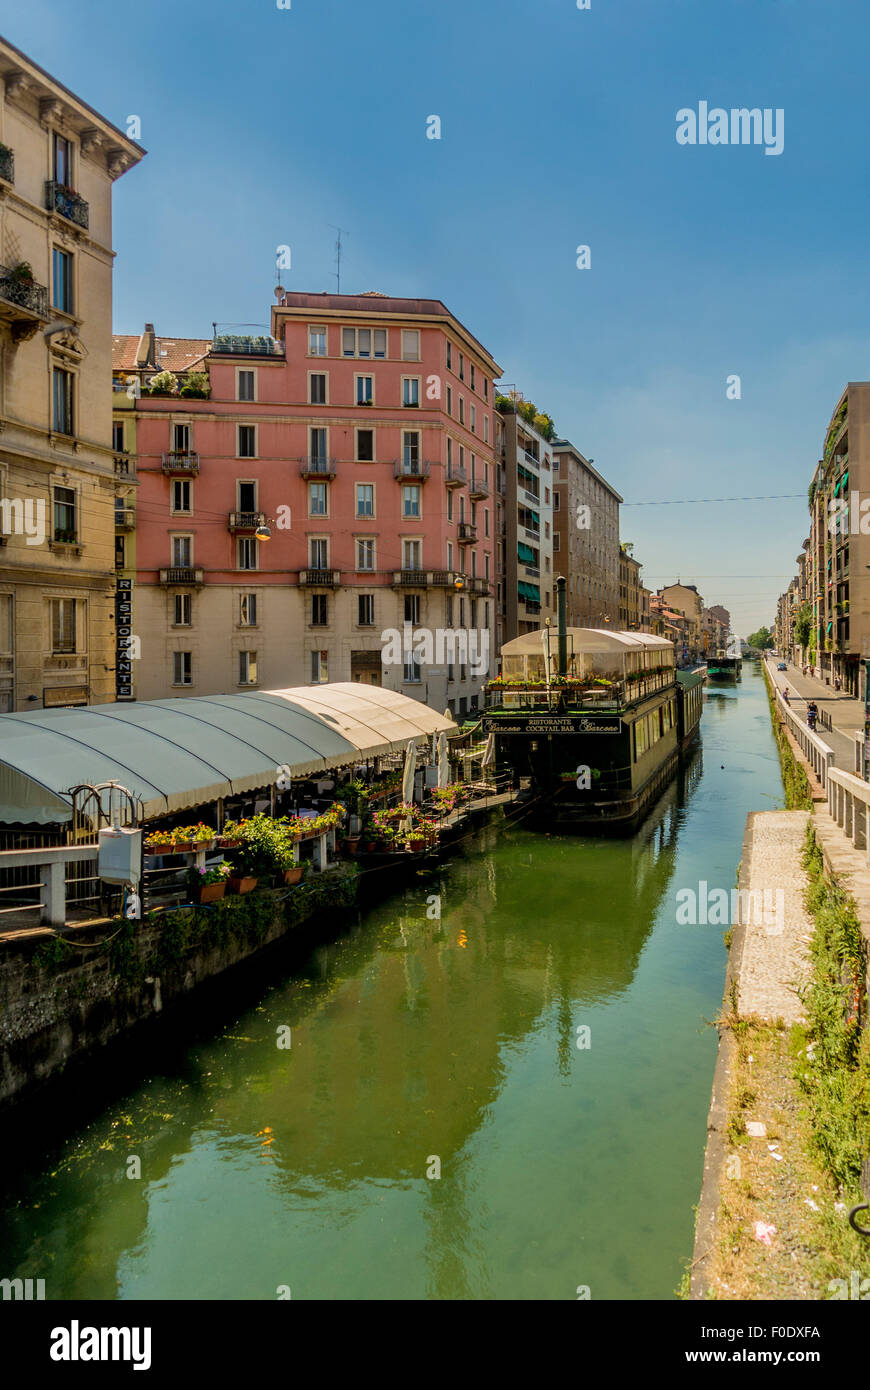 Moored boats on the canal in the Navigli district of Milan. Italy. - Stock Image